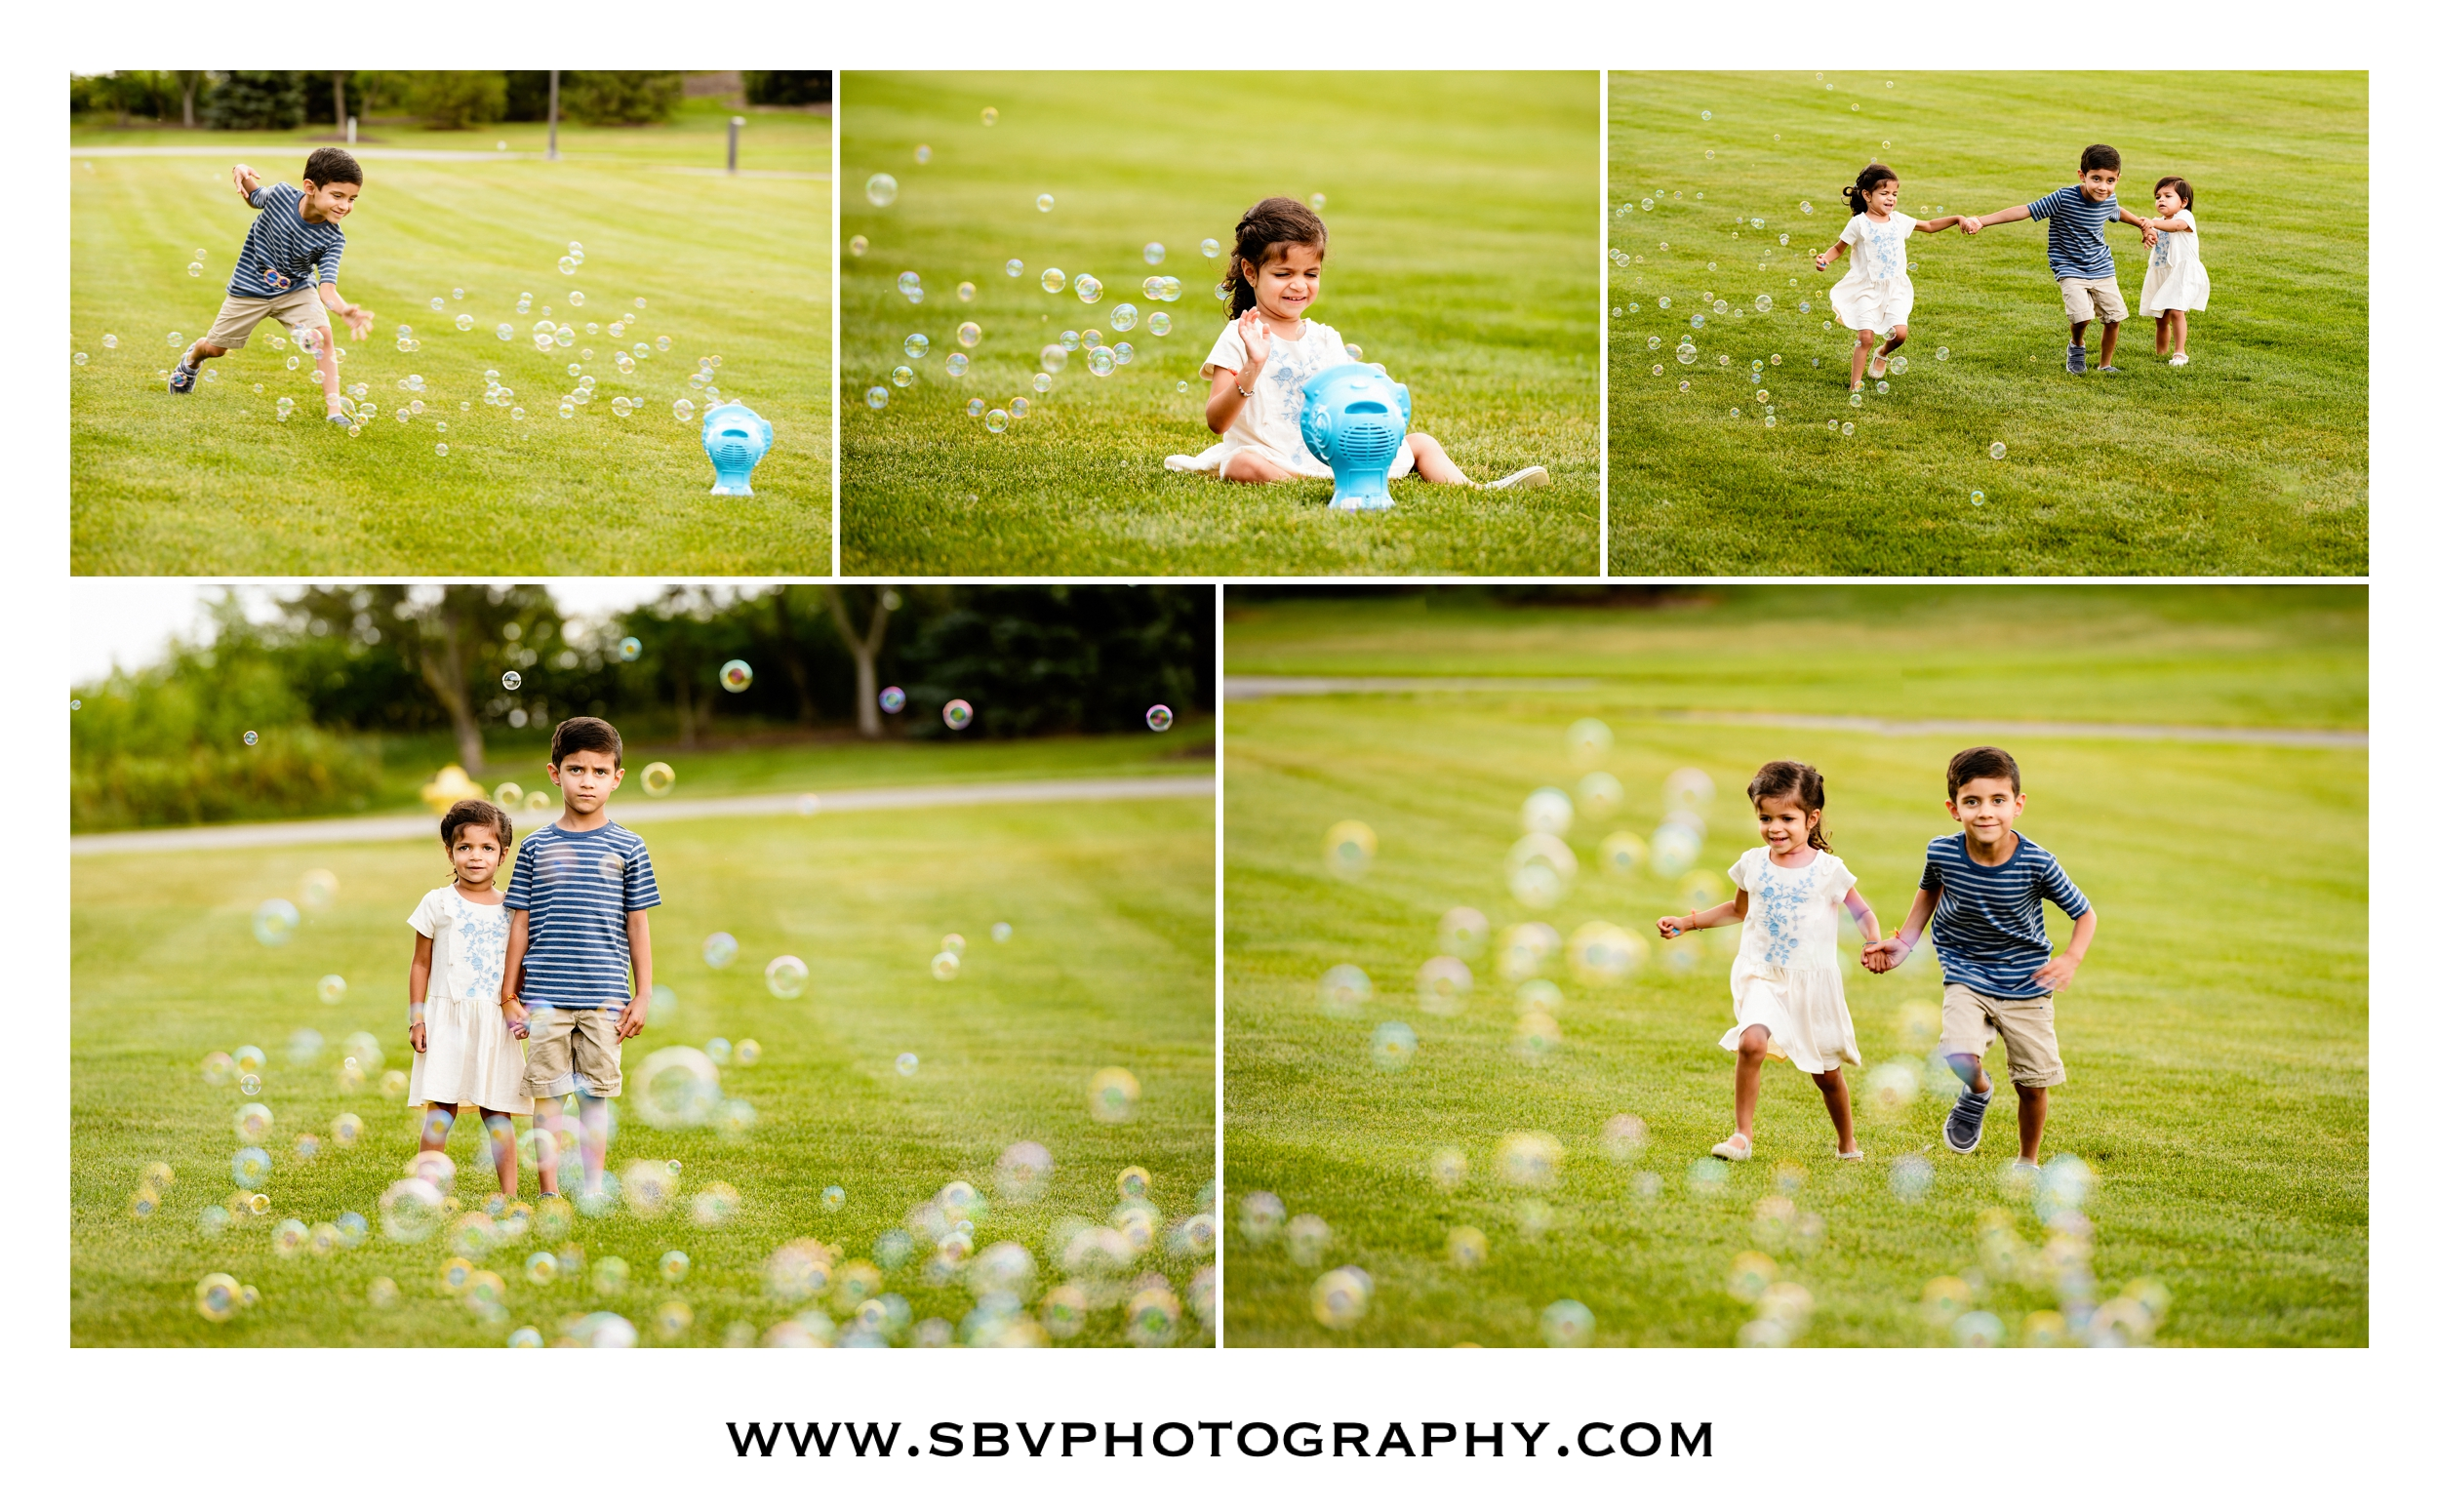 Lifestyle children's photos with a bubble machine in the park.